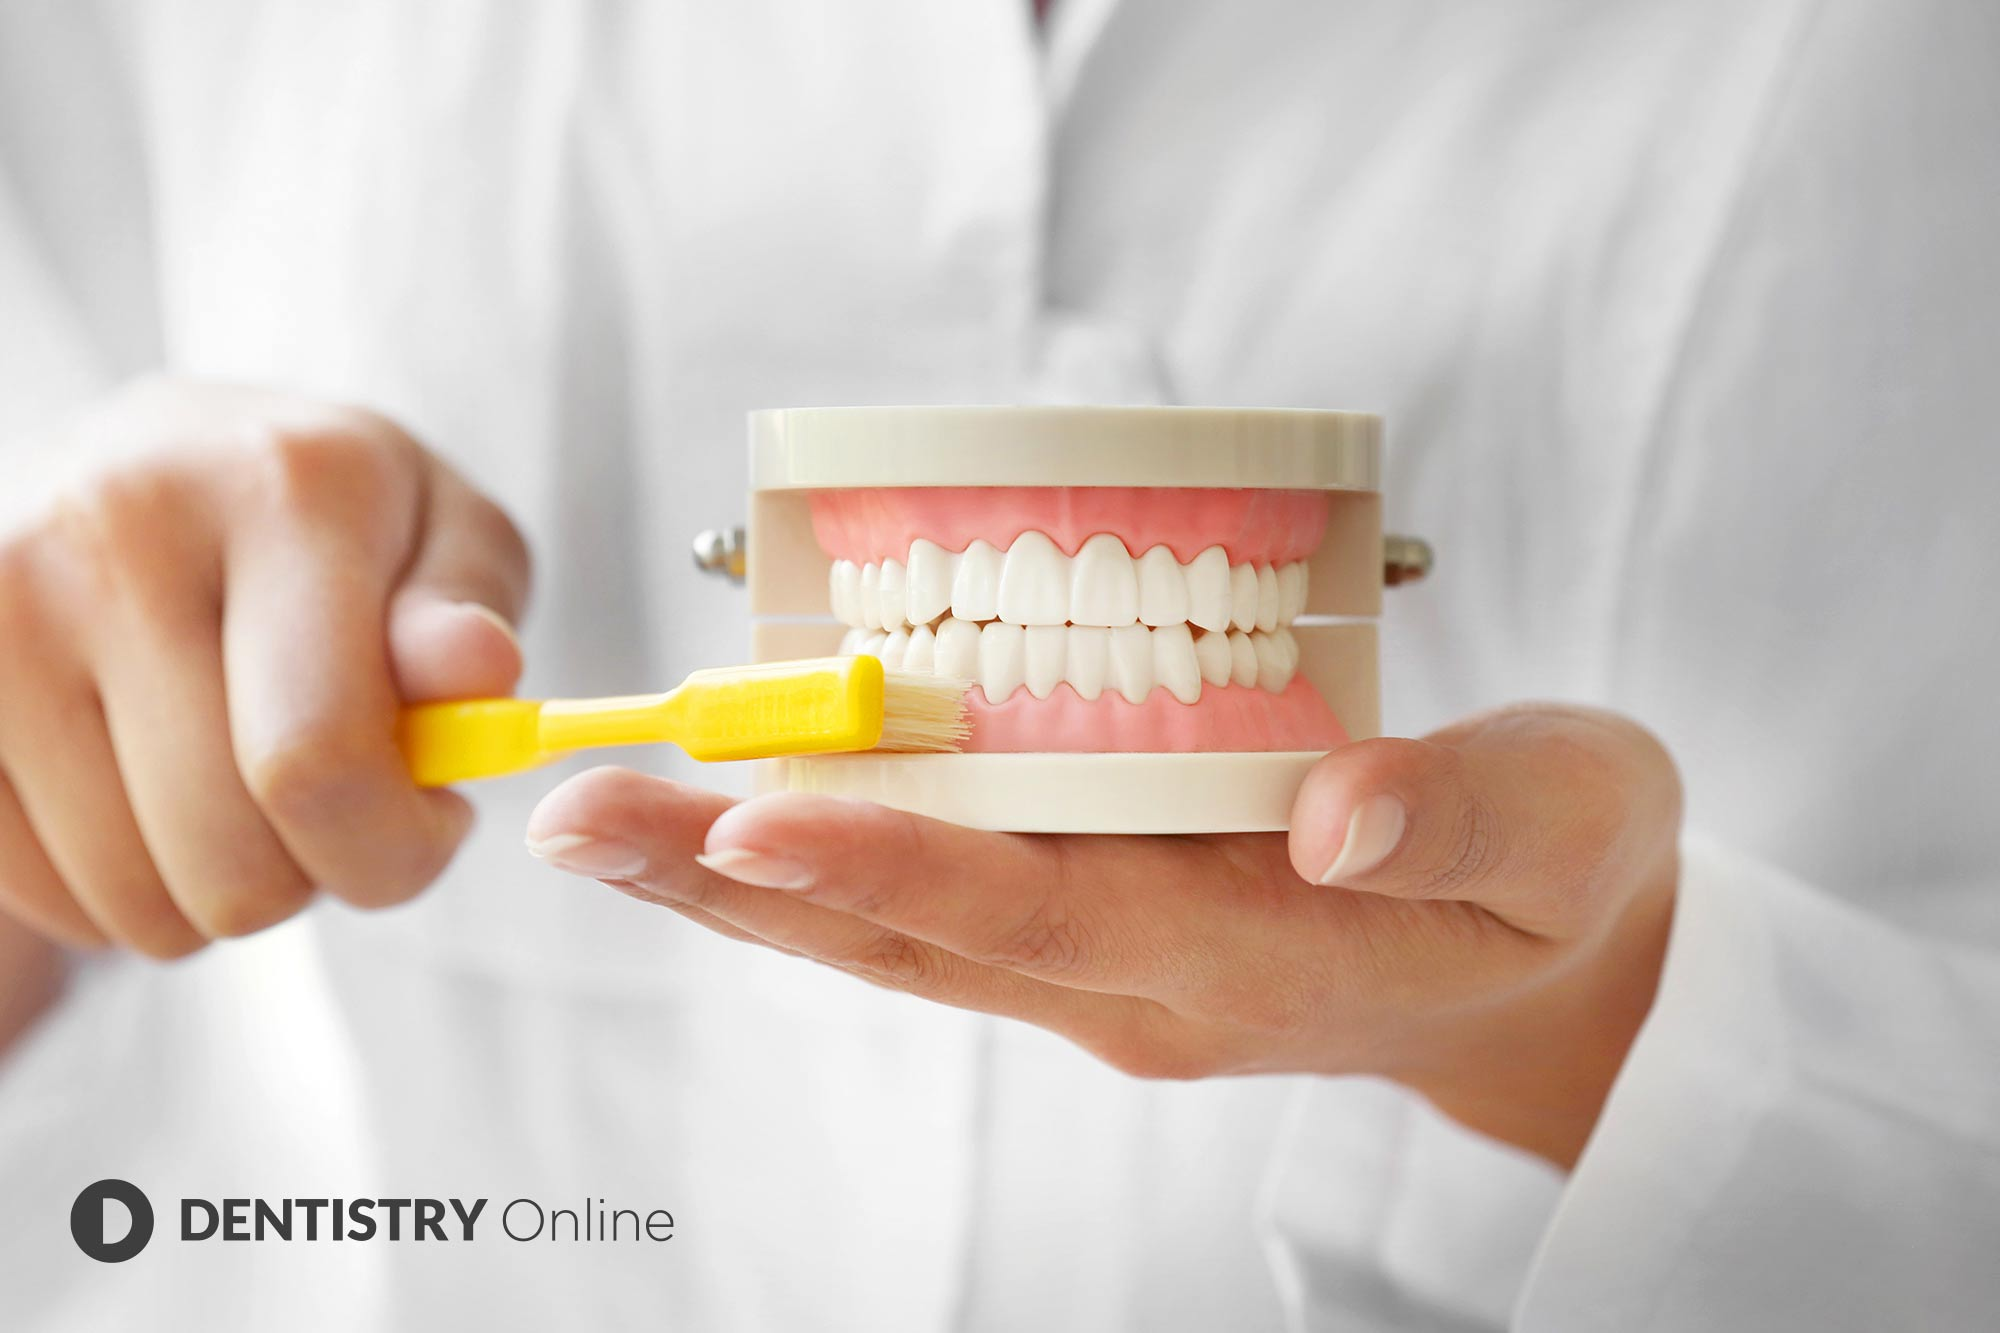 Dental therapy